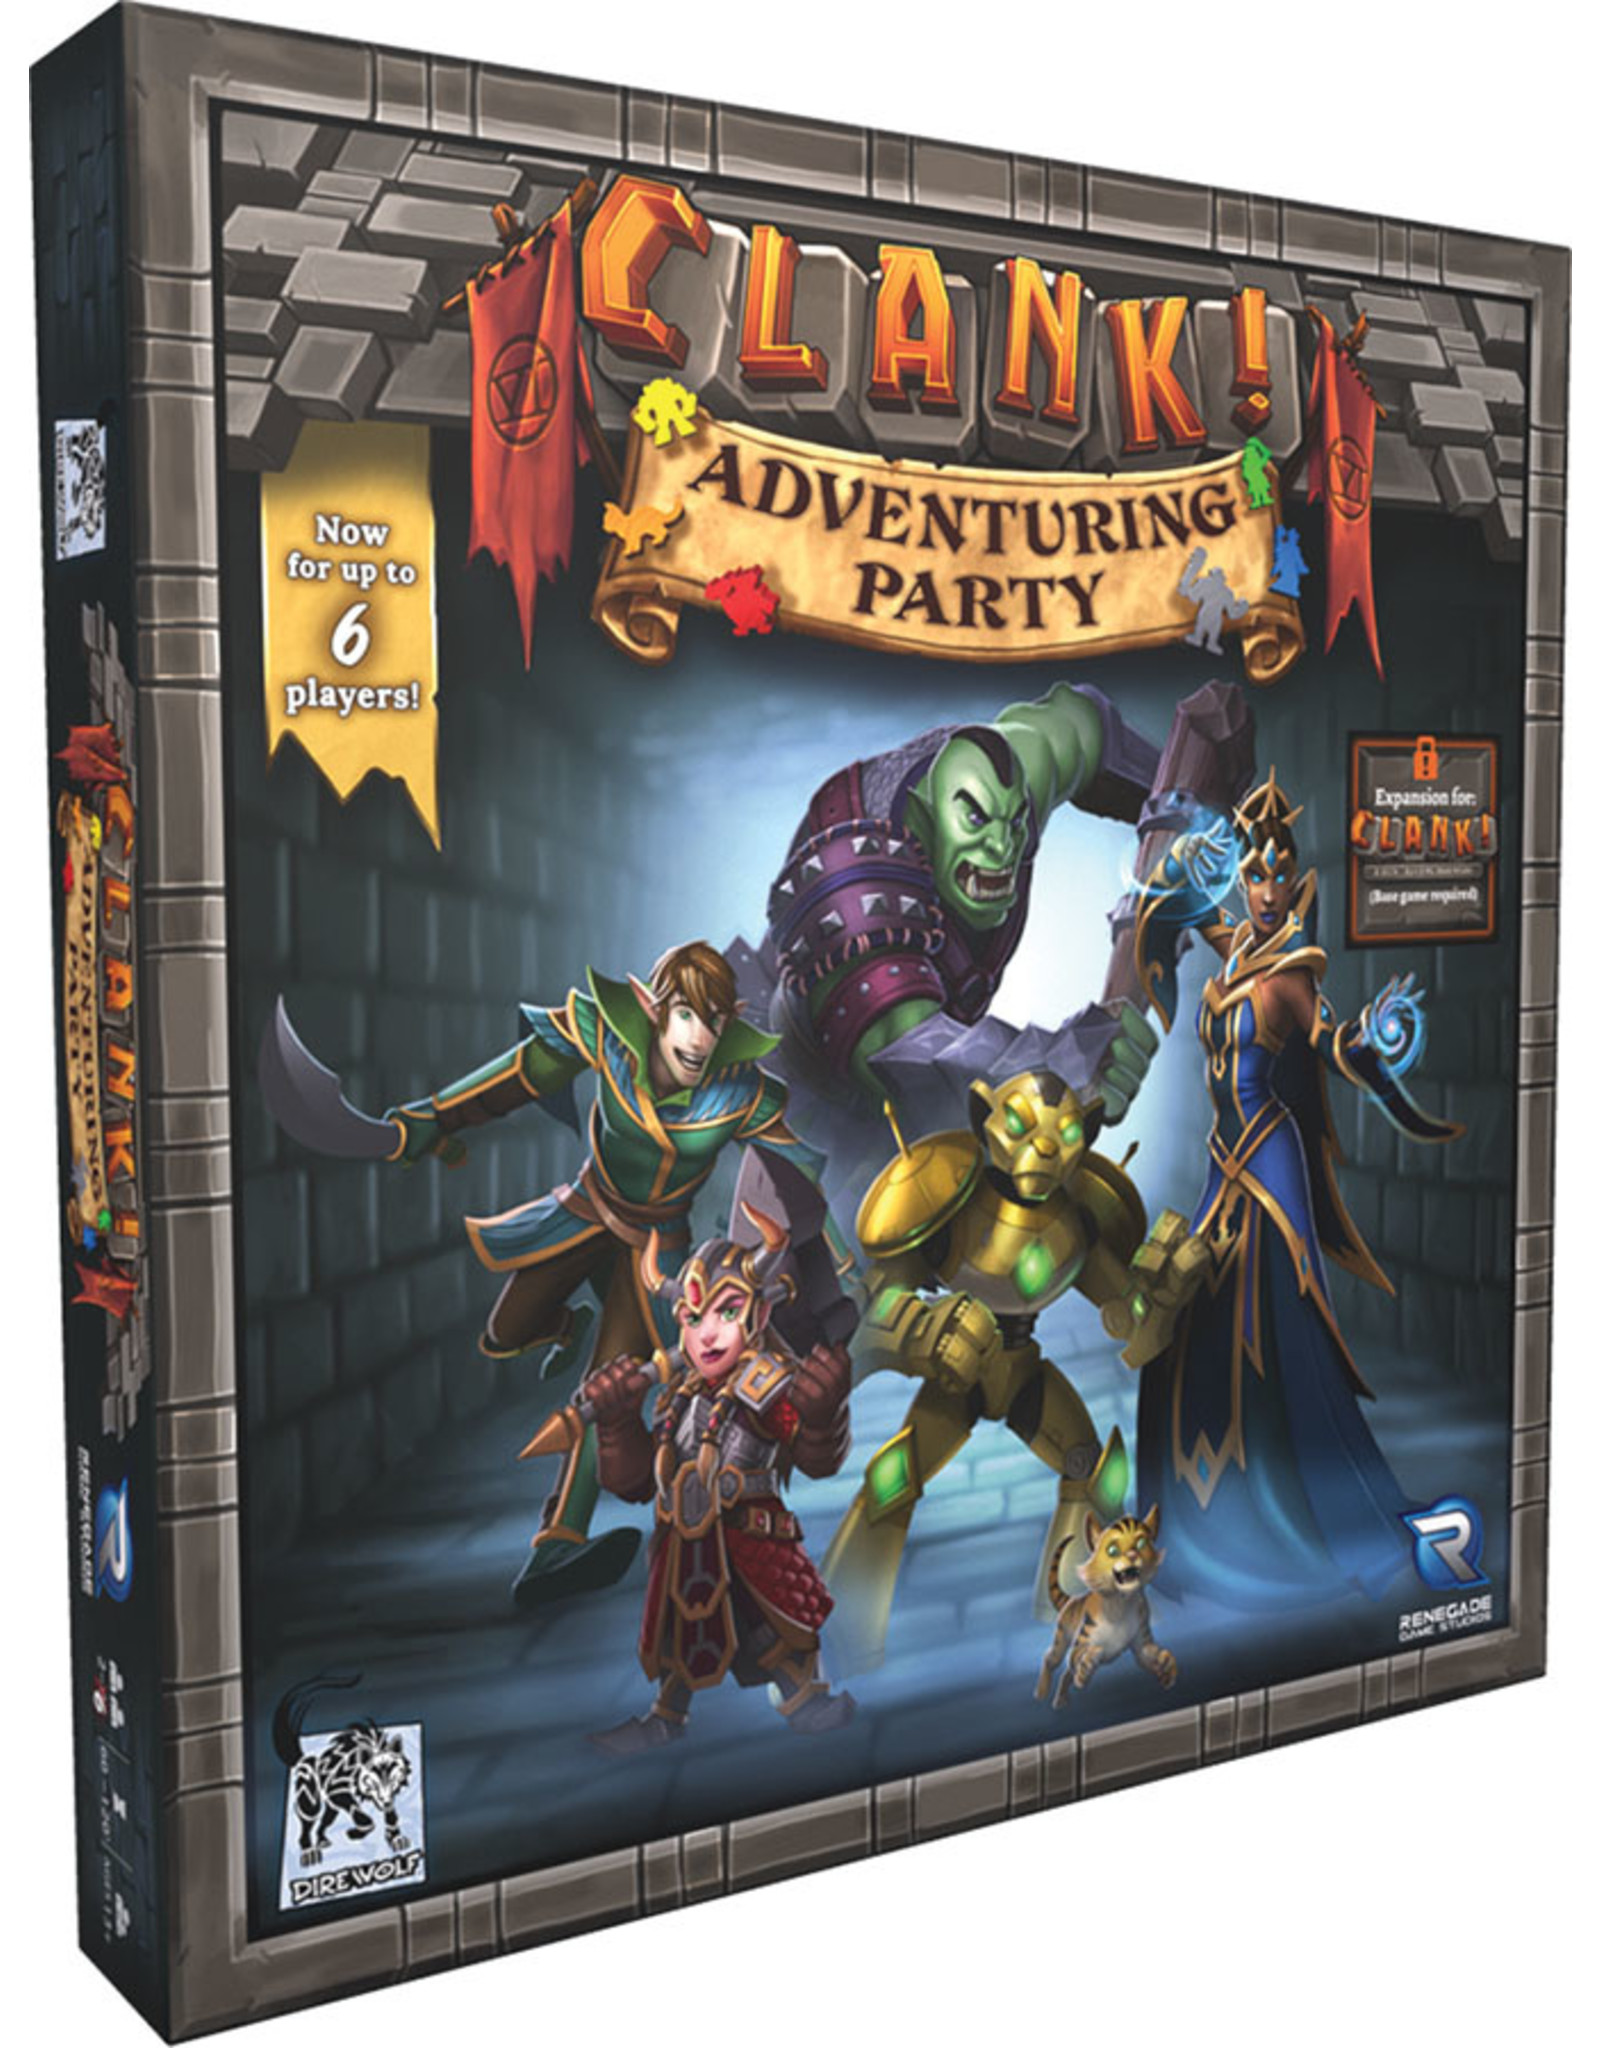 Renegade Game Studios Clank!: Adventuring Party Expansion